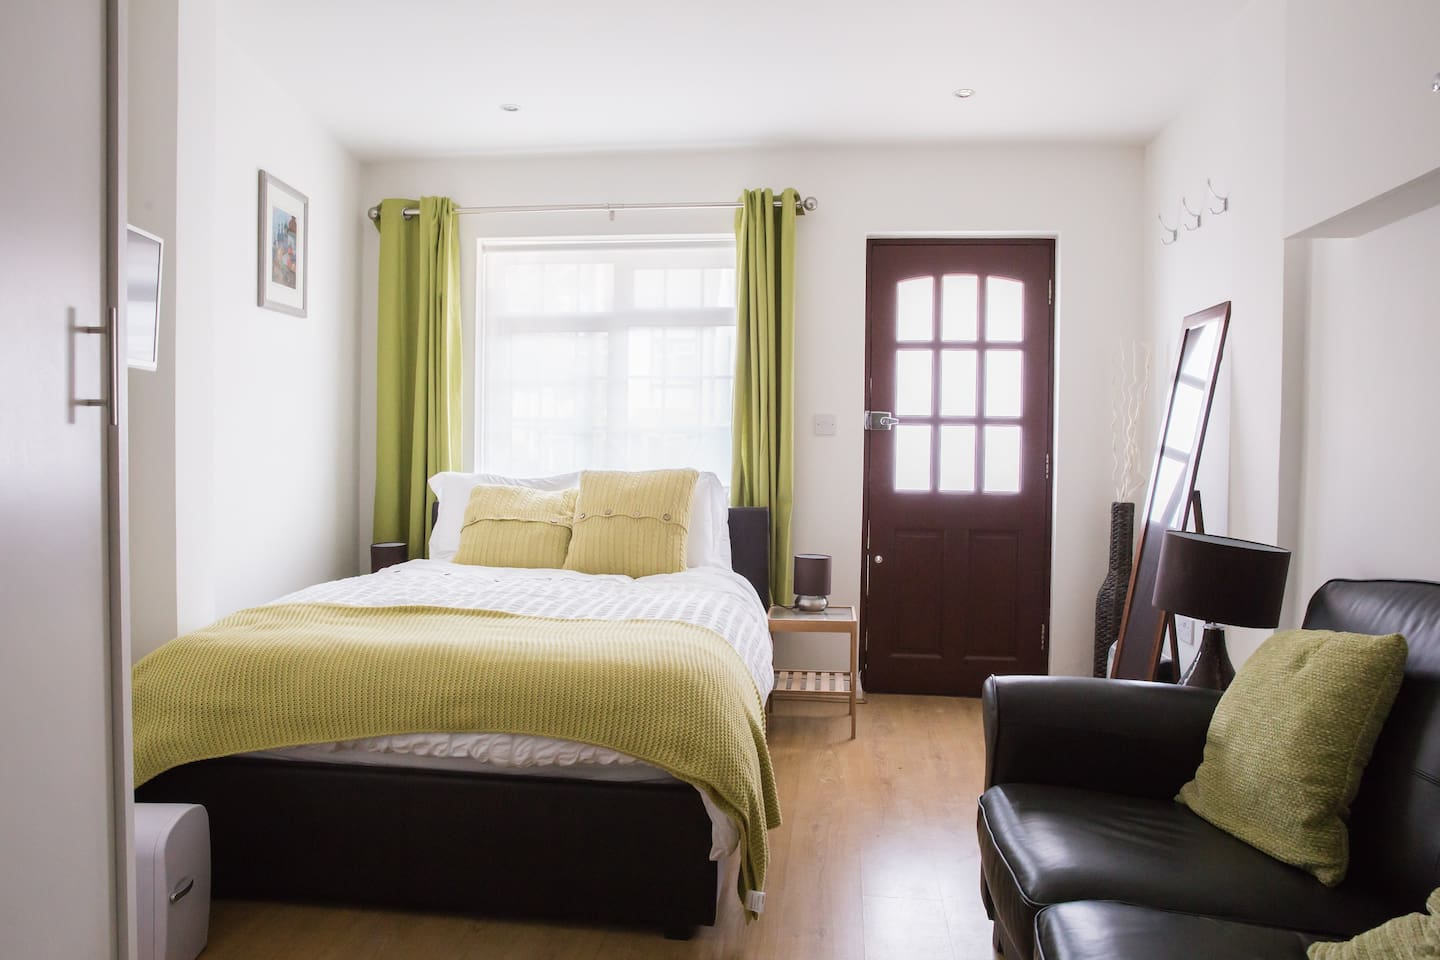 A home from home in Mill Hill... Double ottoman bed, comfy sofa, extensive storage and hanging space in large double wardrobe.